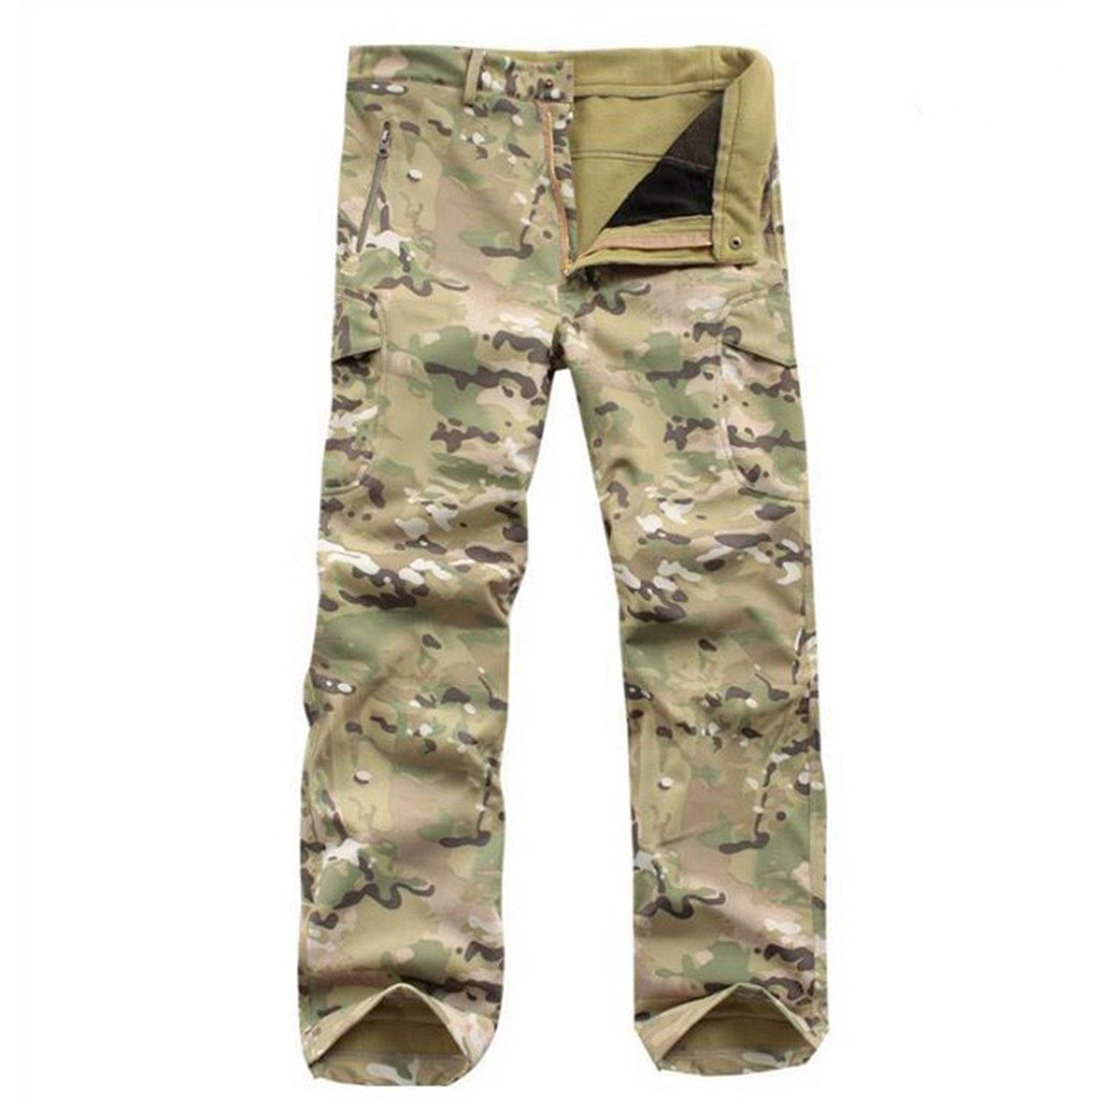 Eglemall Men's Military Tactical Hunting Pants